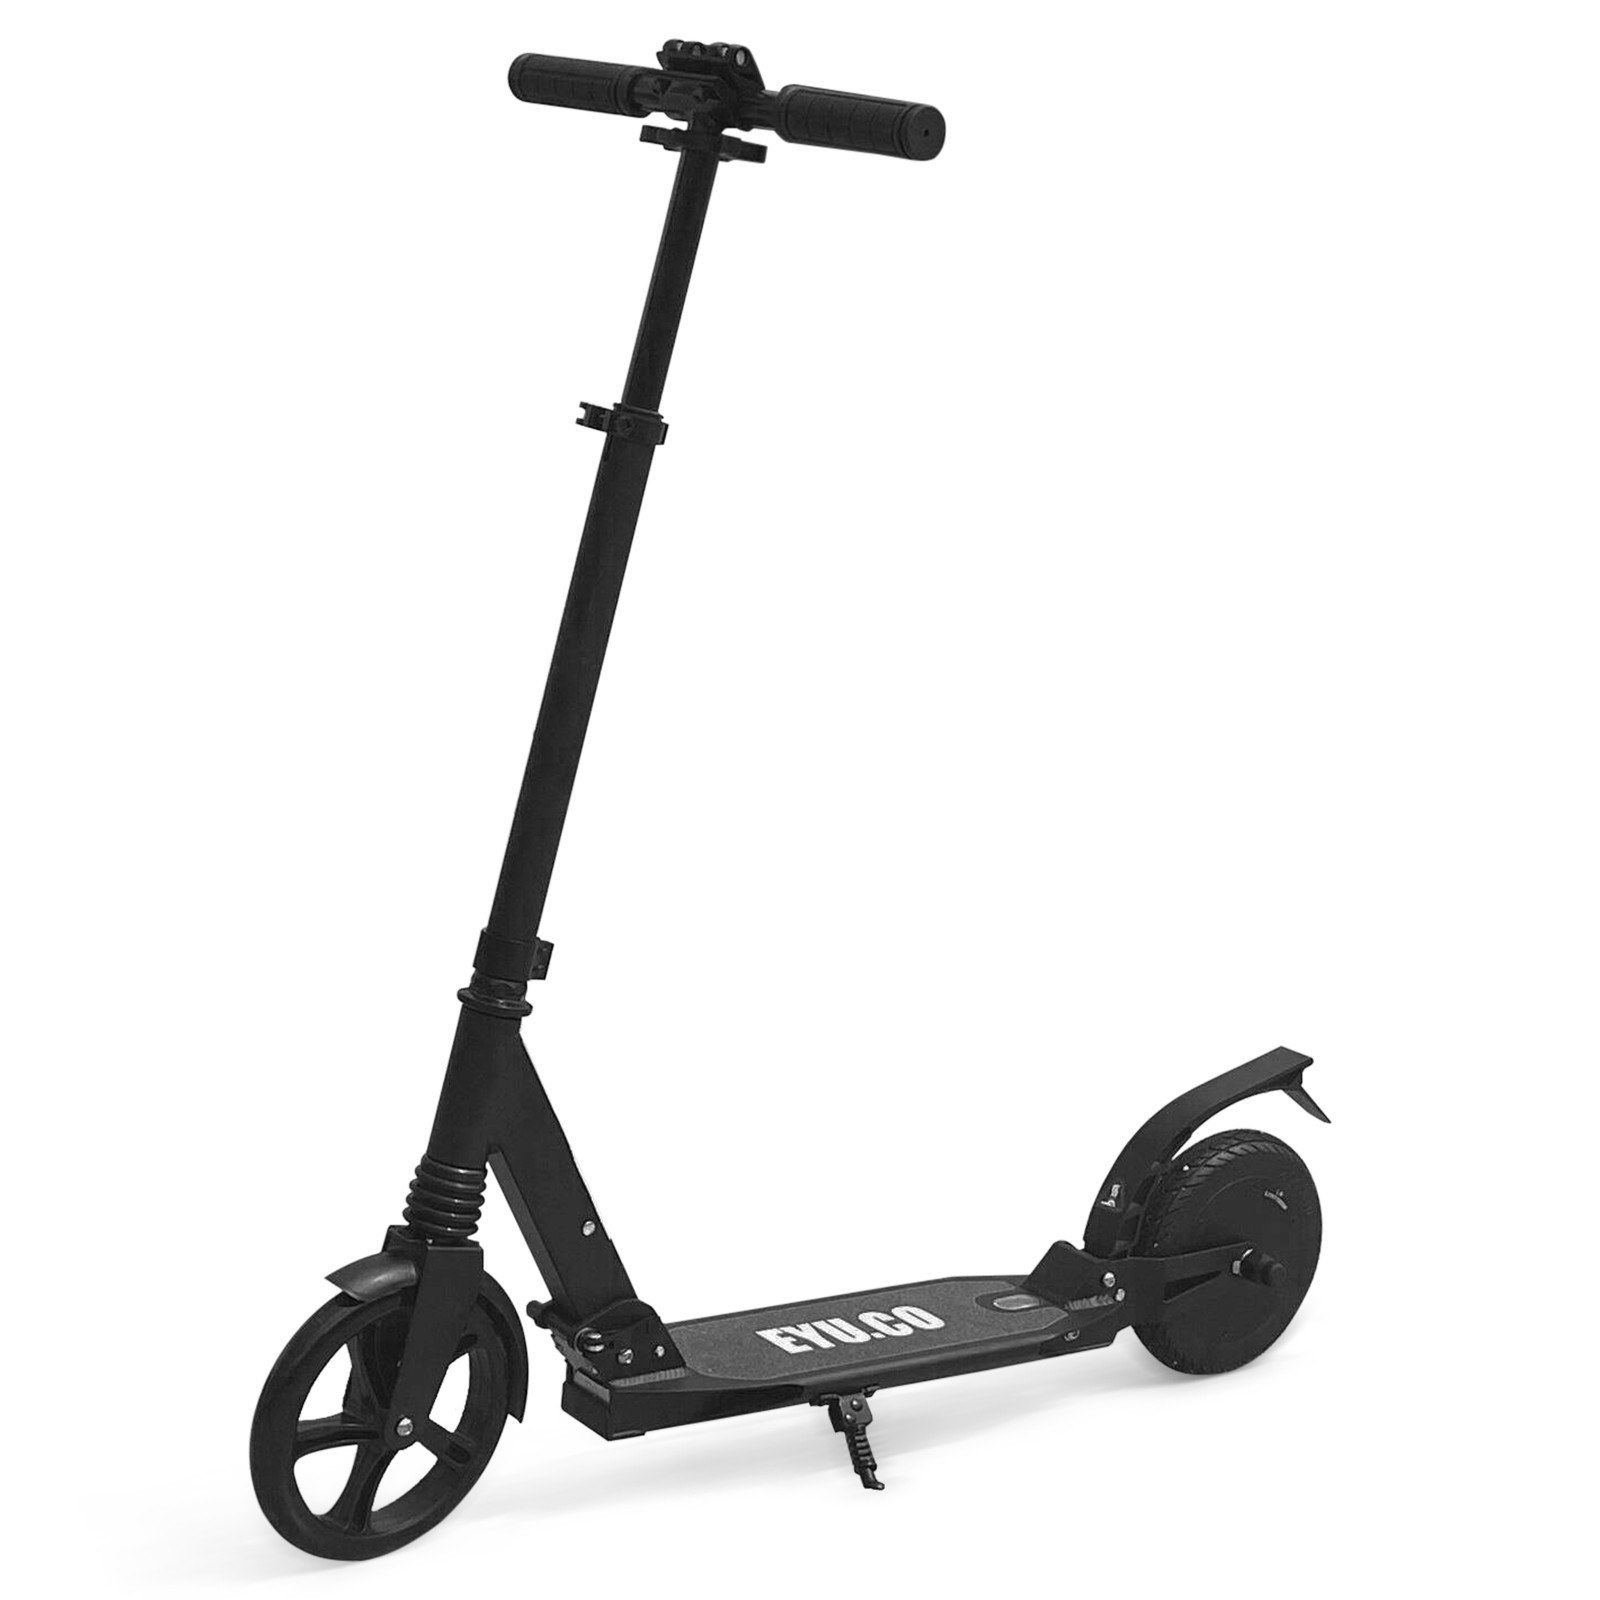 tomtop.com - $100 OFF E9 8 Inch Height Adjustable Folding Electric Scooter, Limited Offers $168.99